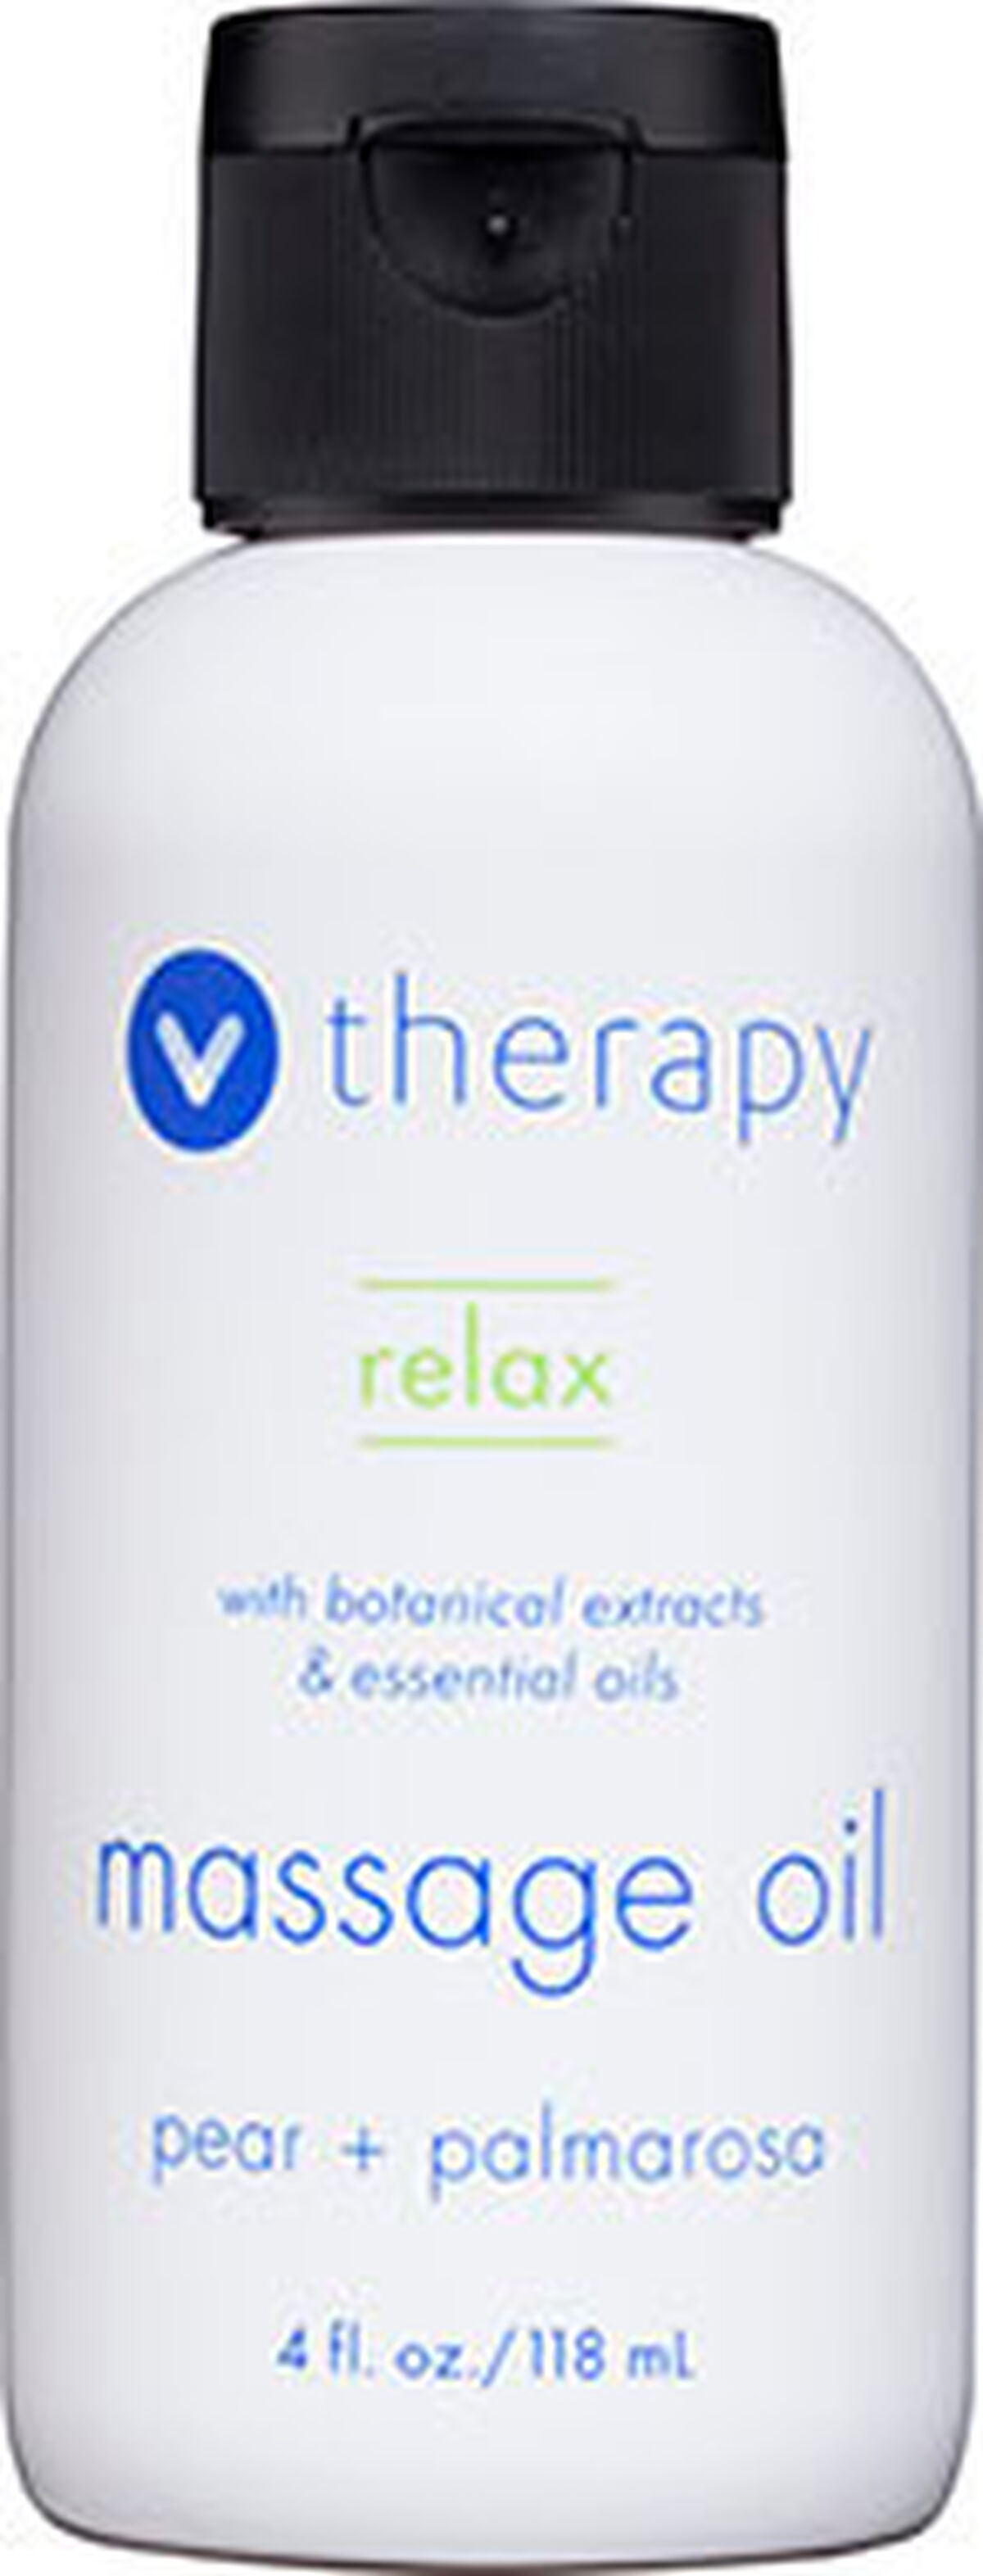 V Therapy Relax Massage Oil | Vitamin World | Tuggl